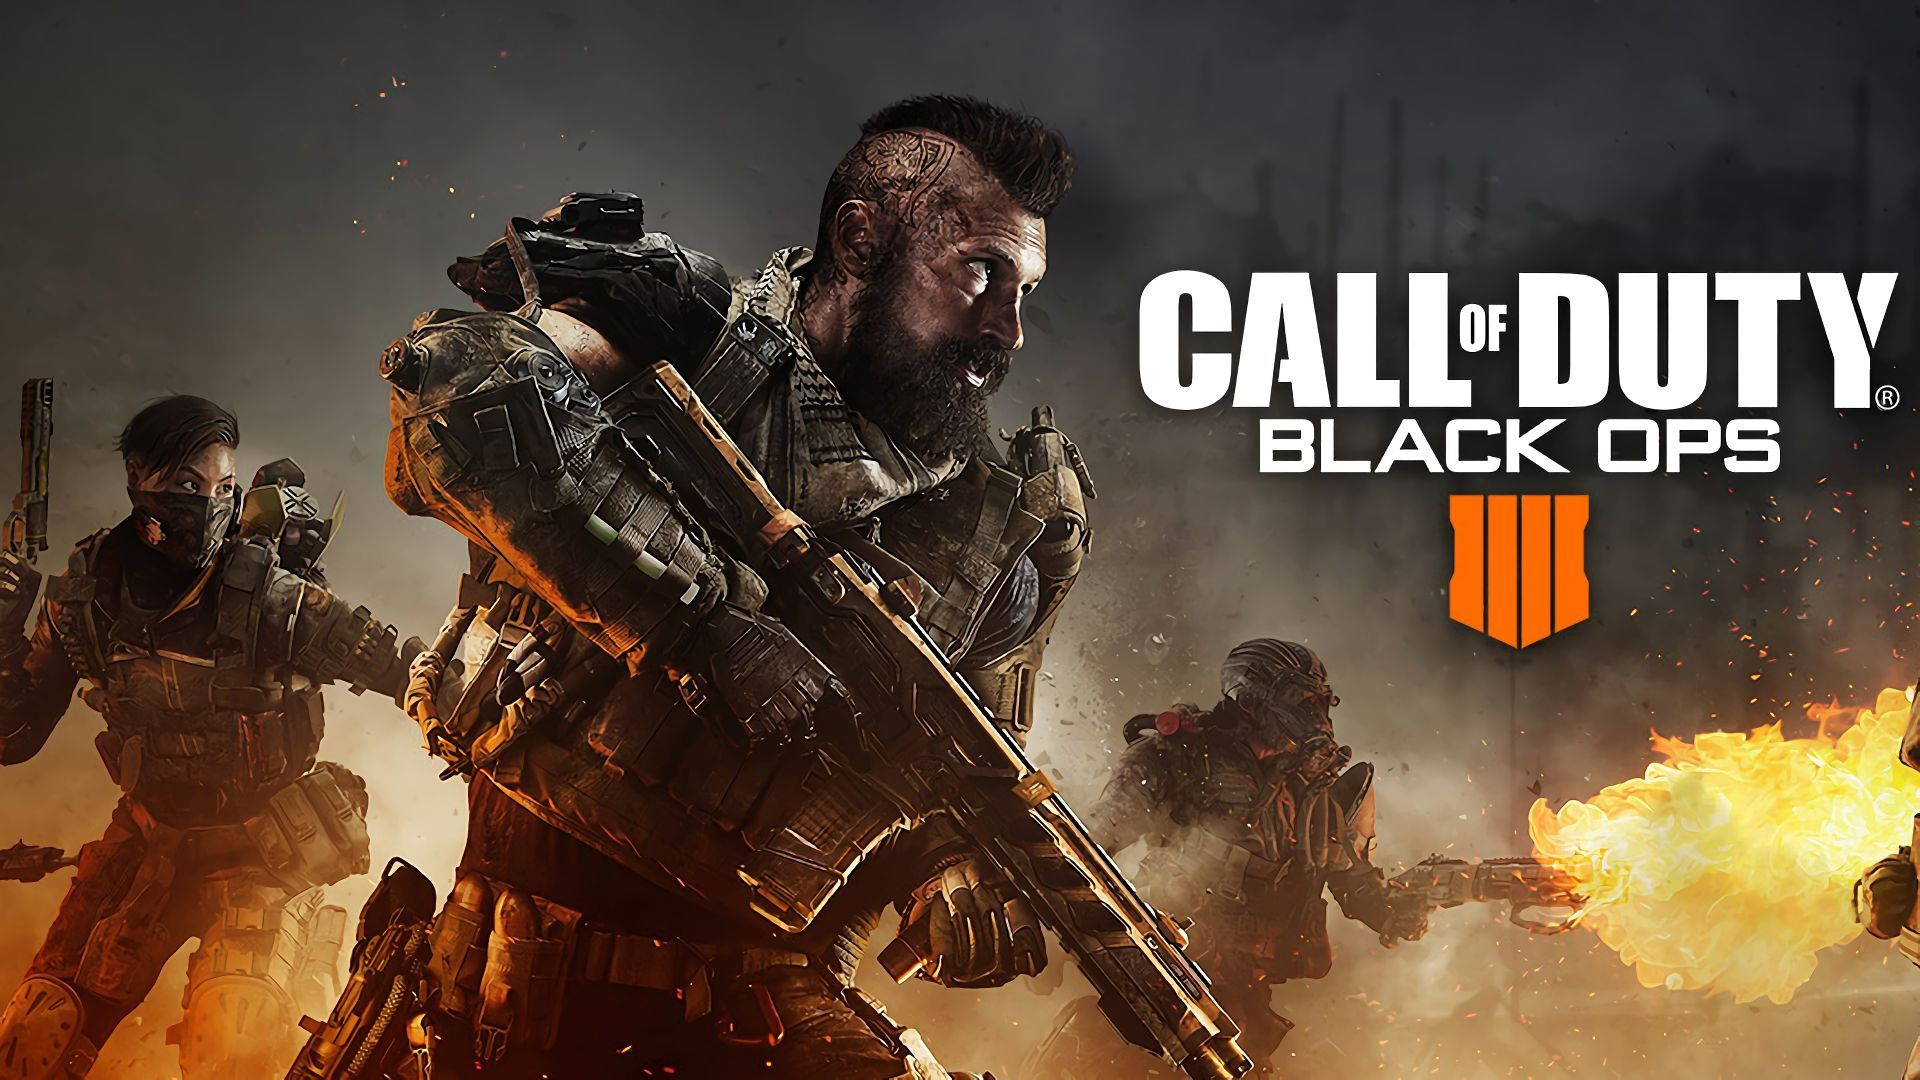 Wallpaper Call Of Duty Black Ops 4 Poster 4k Games 19385